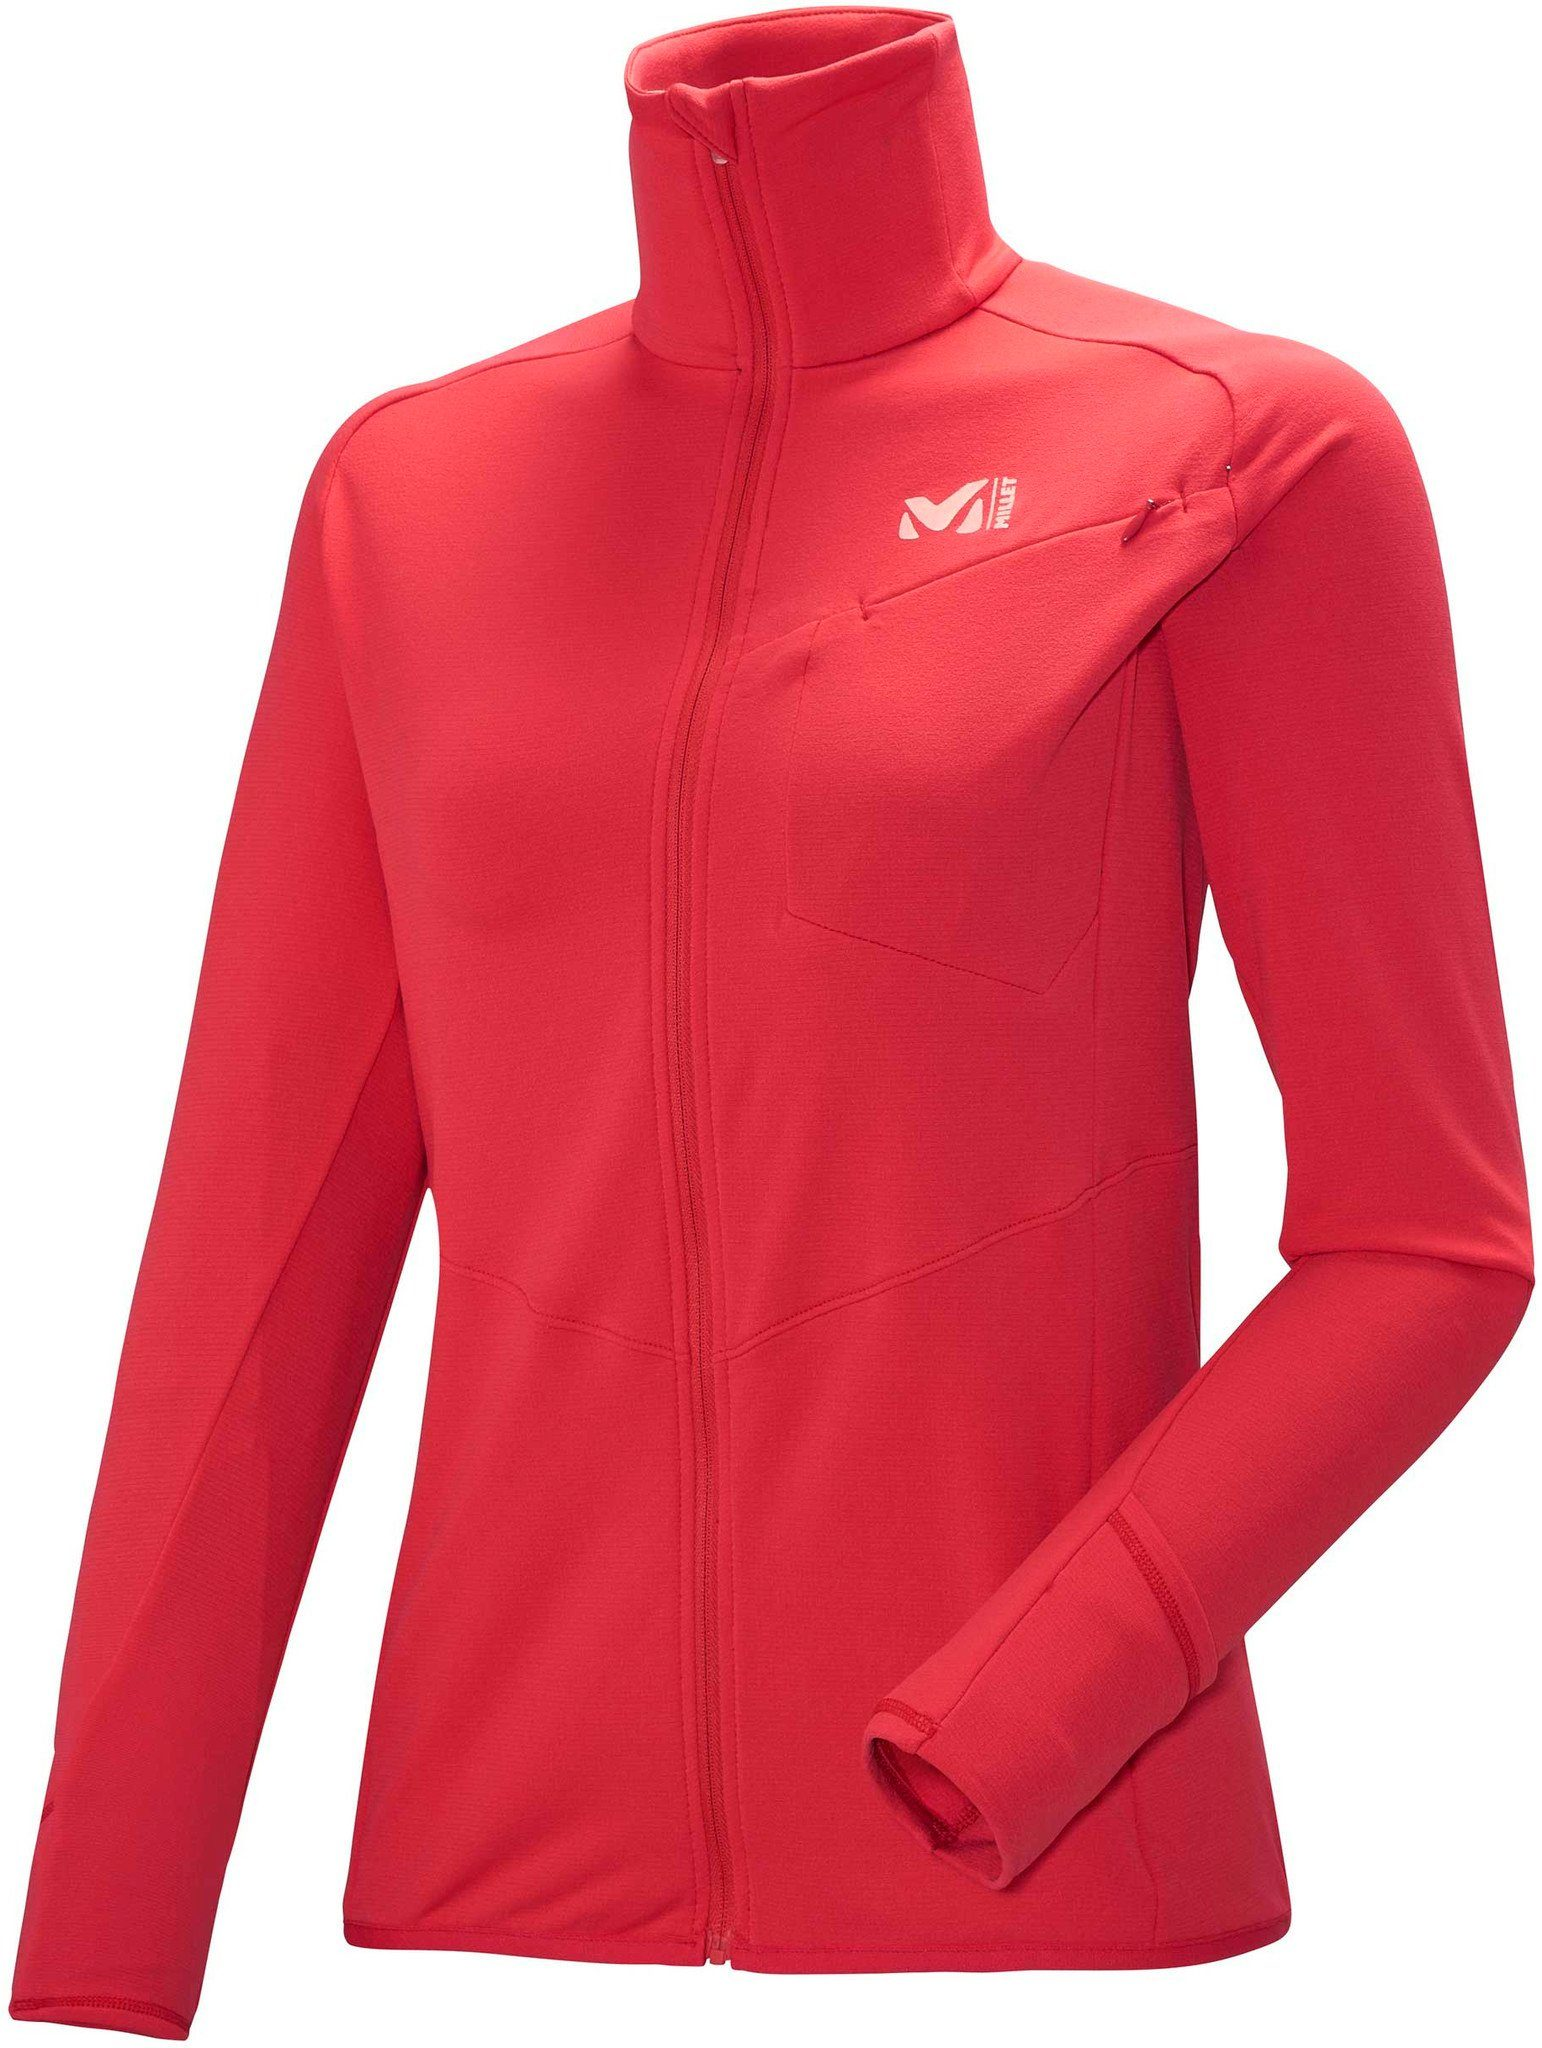 Millet Outdoorjacke »LD LTK Thermal Jacket Women«